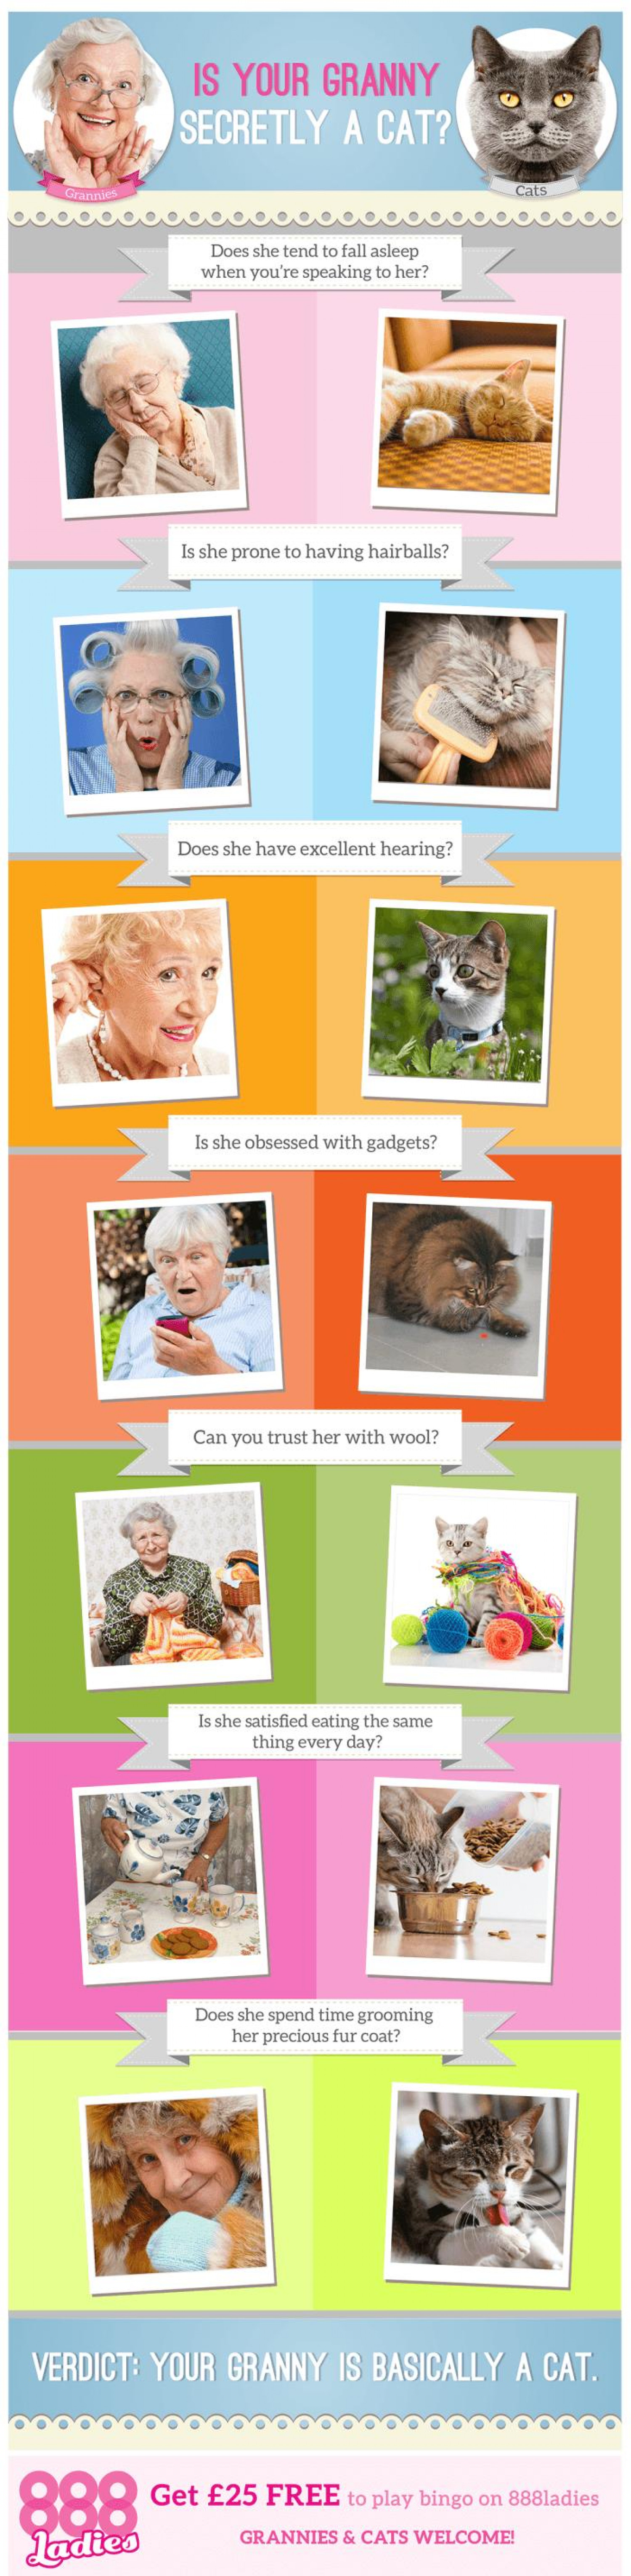 Is Your Granny Secretly a Cat? Infographic